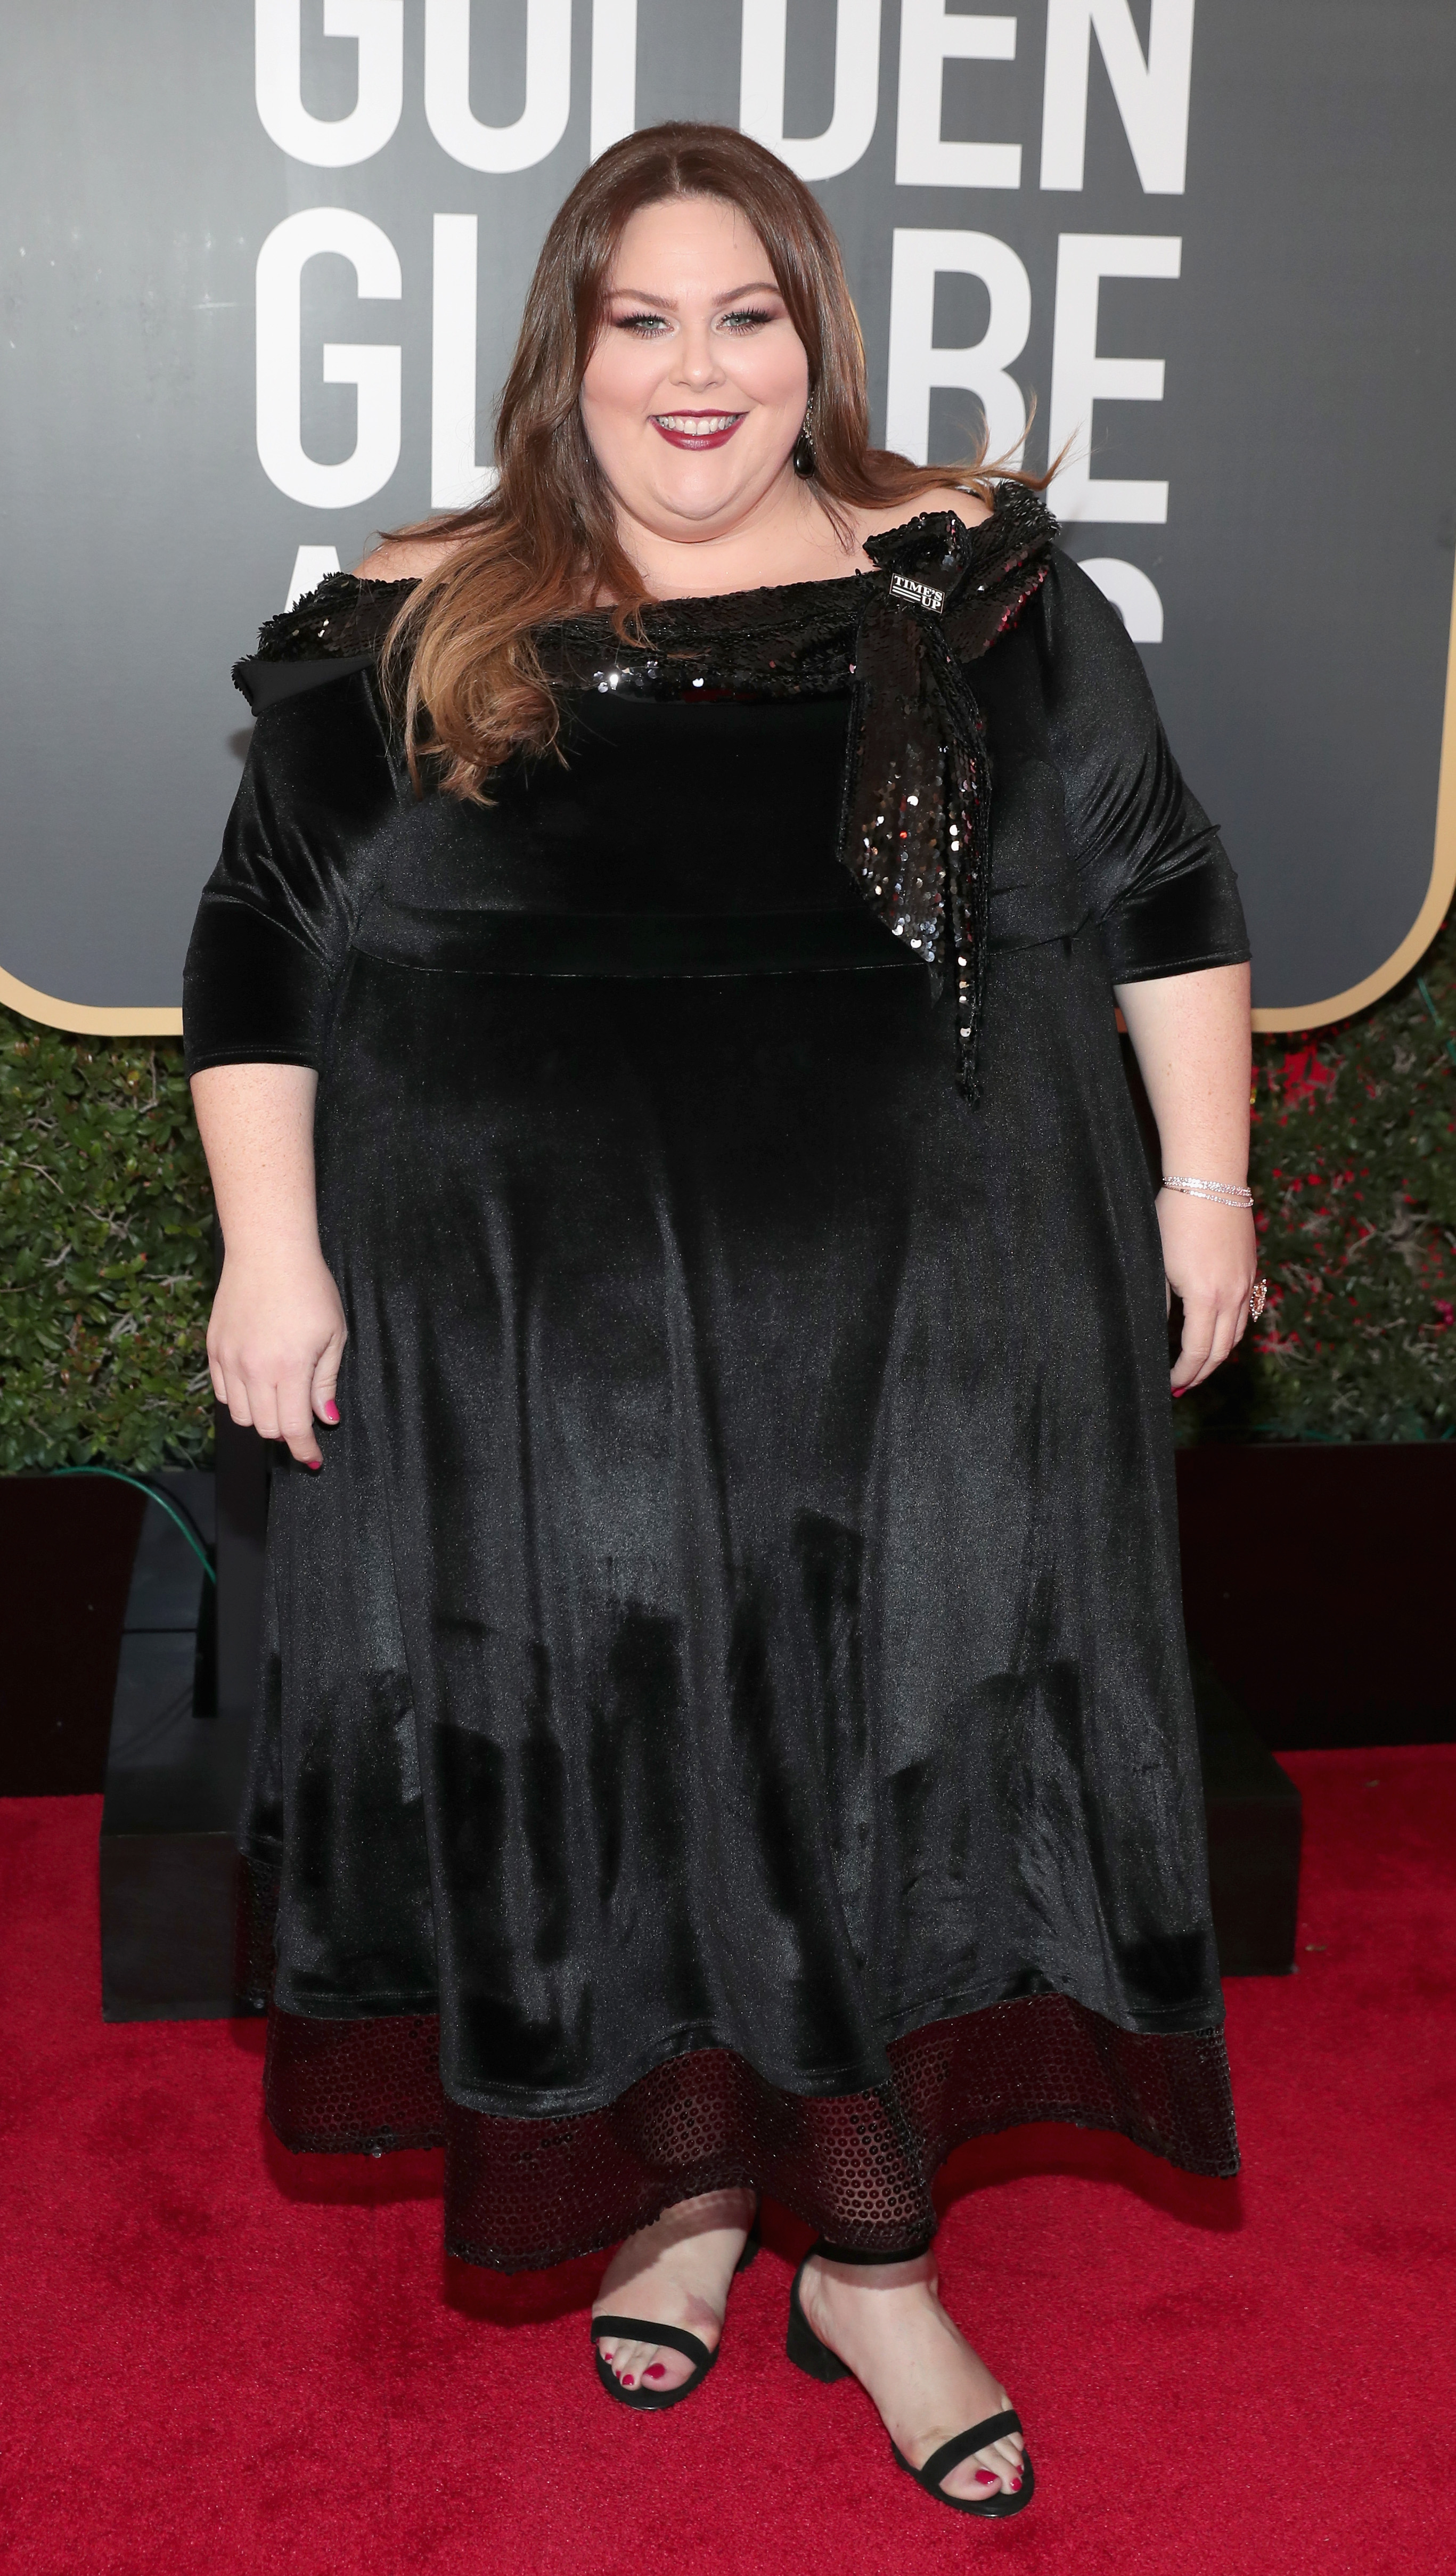 Chrissy Metz arrives to the 75th Annual Golden Globe Awards held at the Beverly Hilton Hotel on January 7, 2018